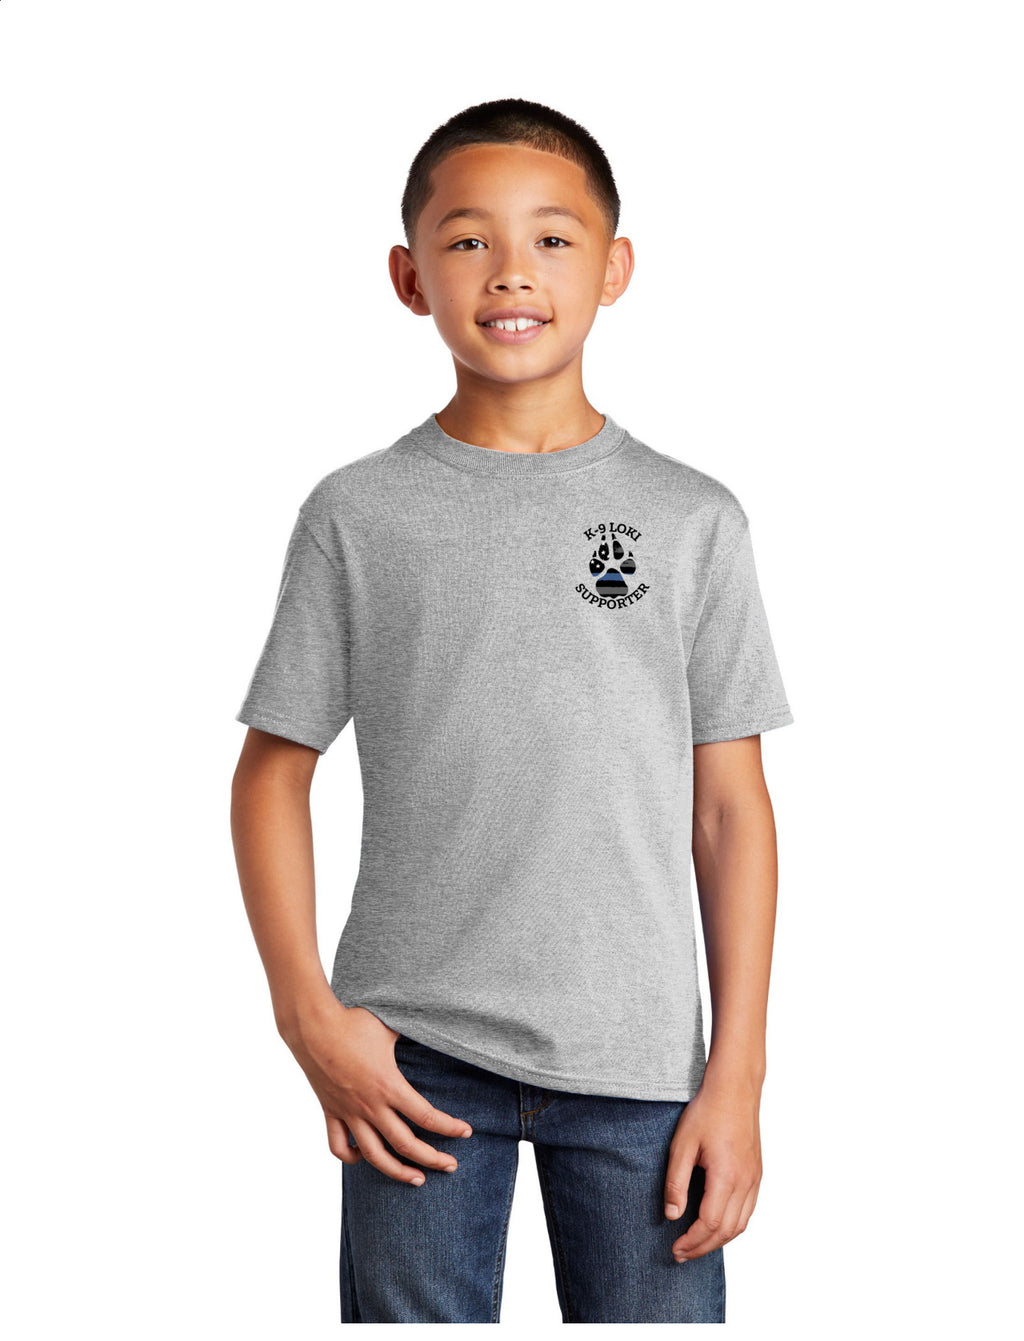 K9 Loki Supporter - Youth Short Sleeve Tee